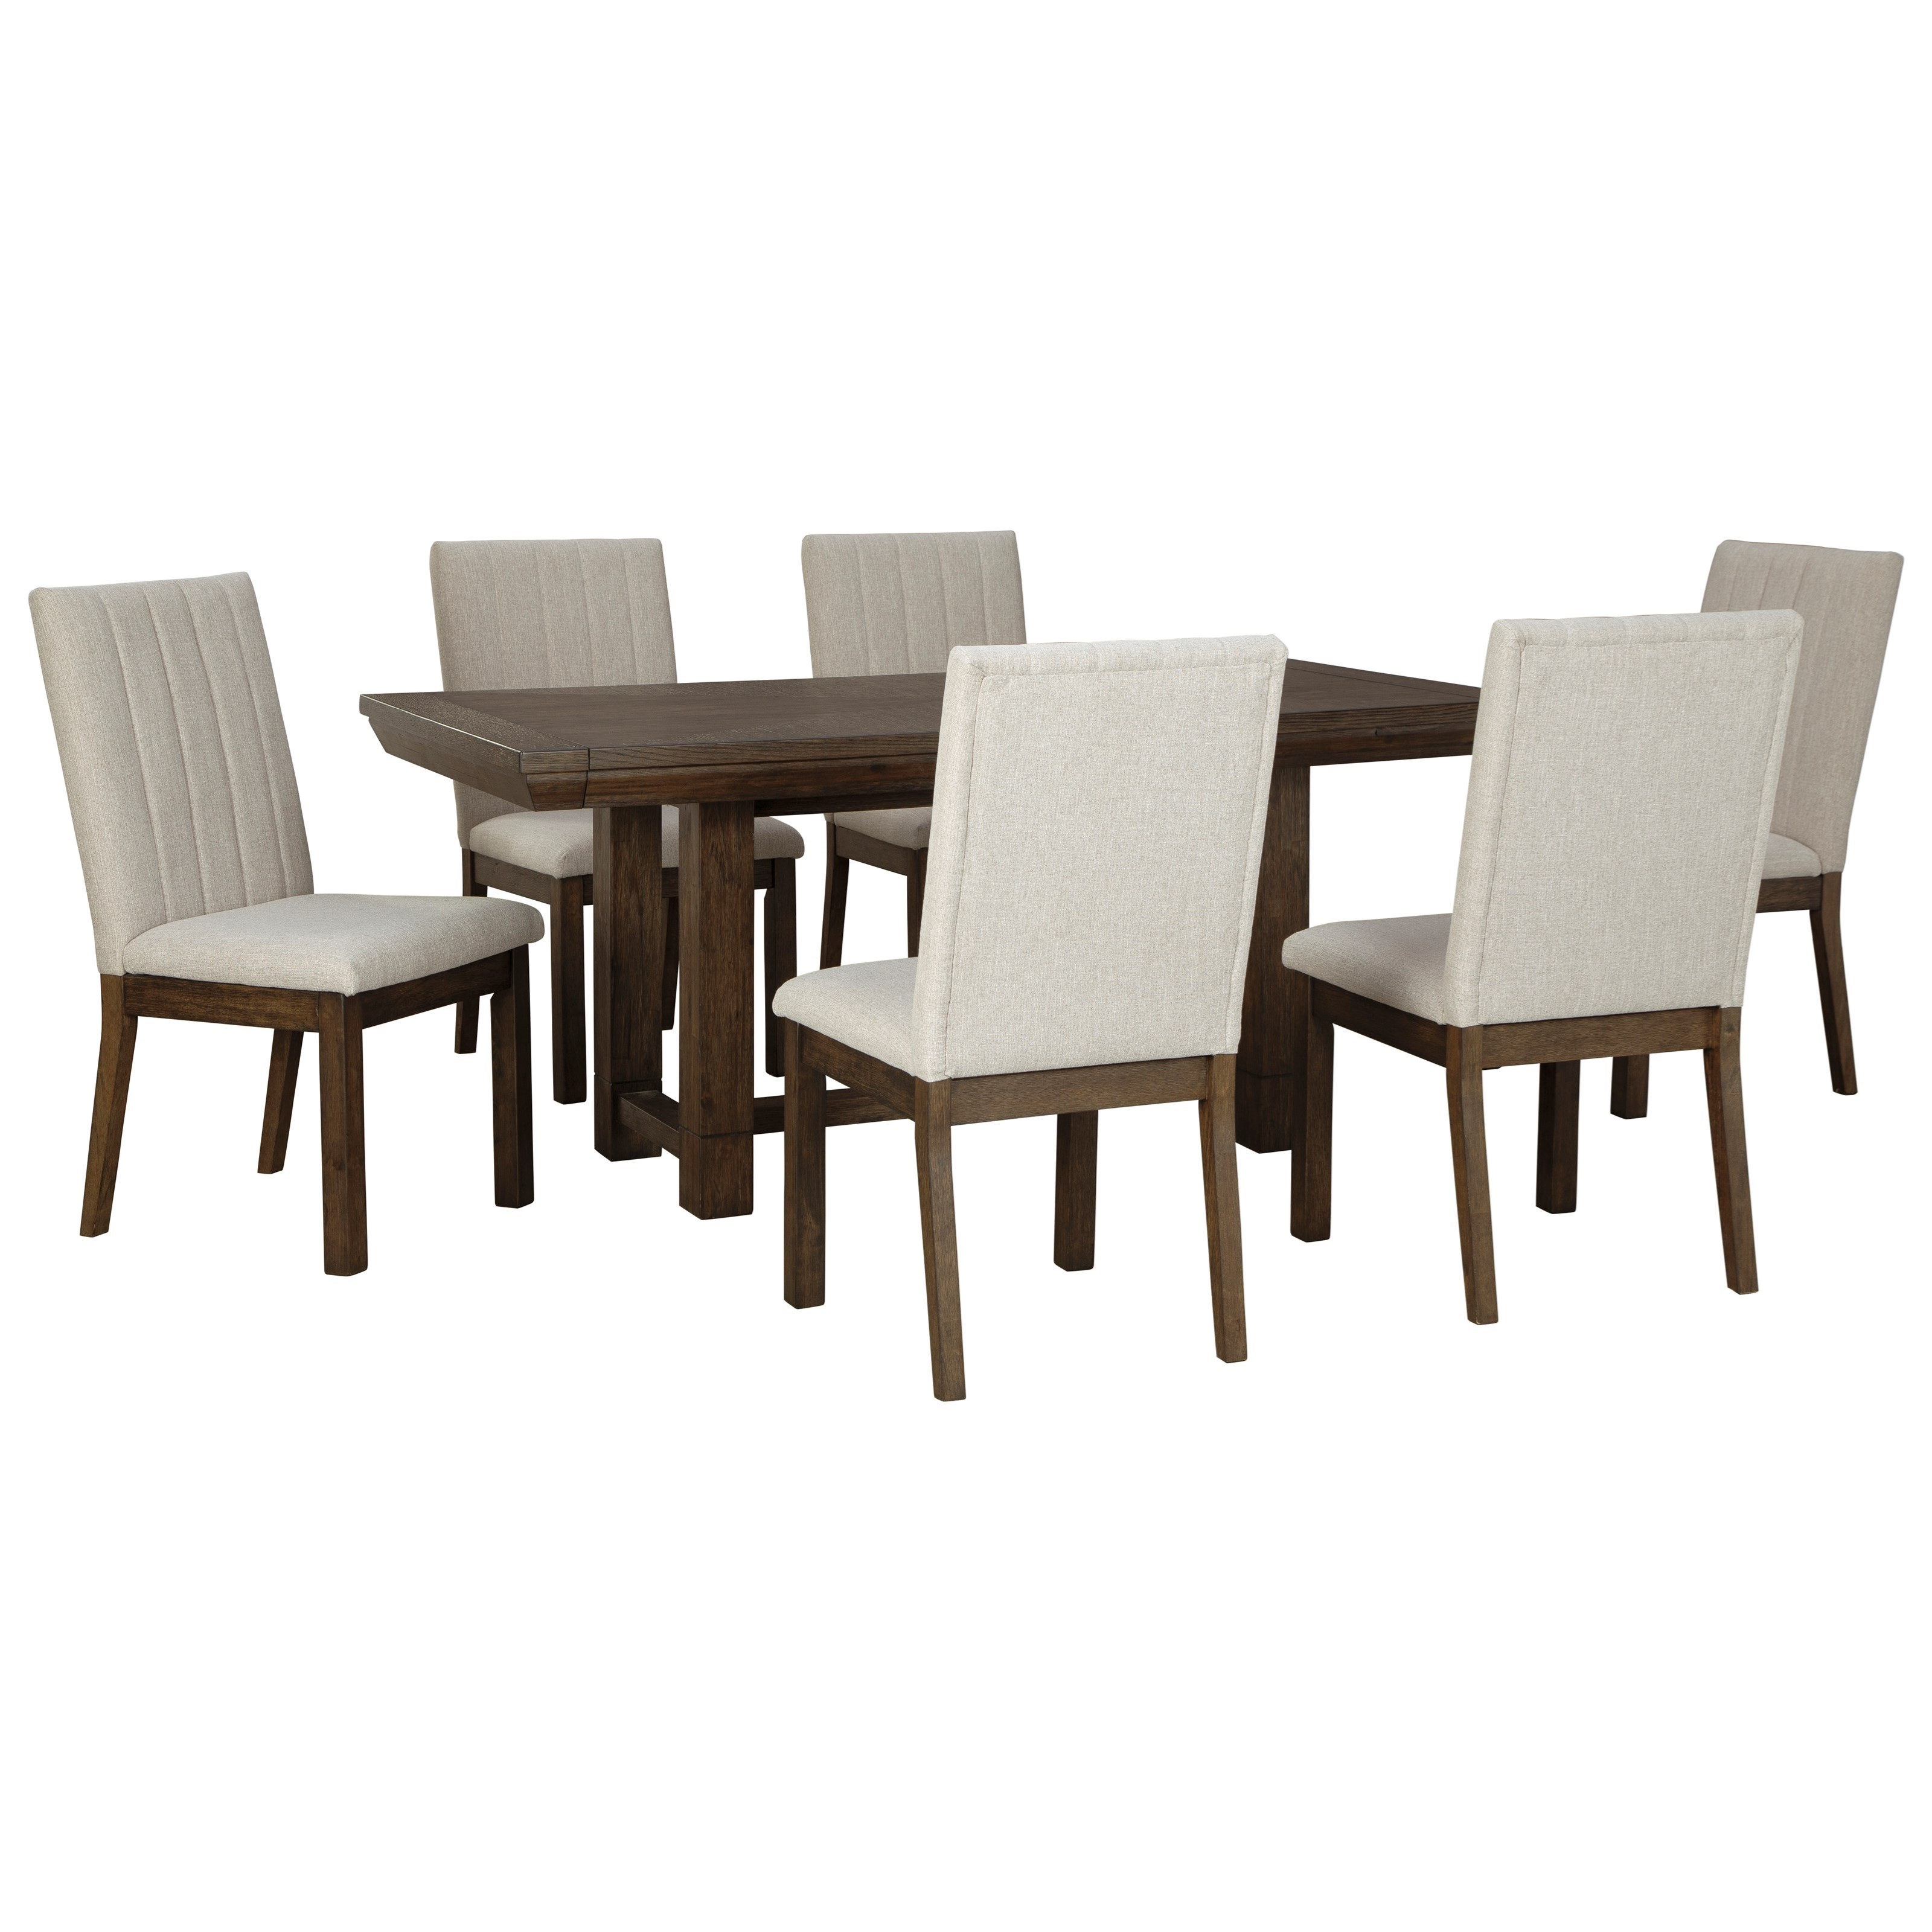 Dellbeck 7-Piece Dining Set by Millennium at Value City Furniture